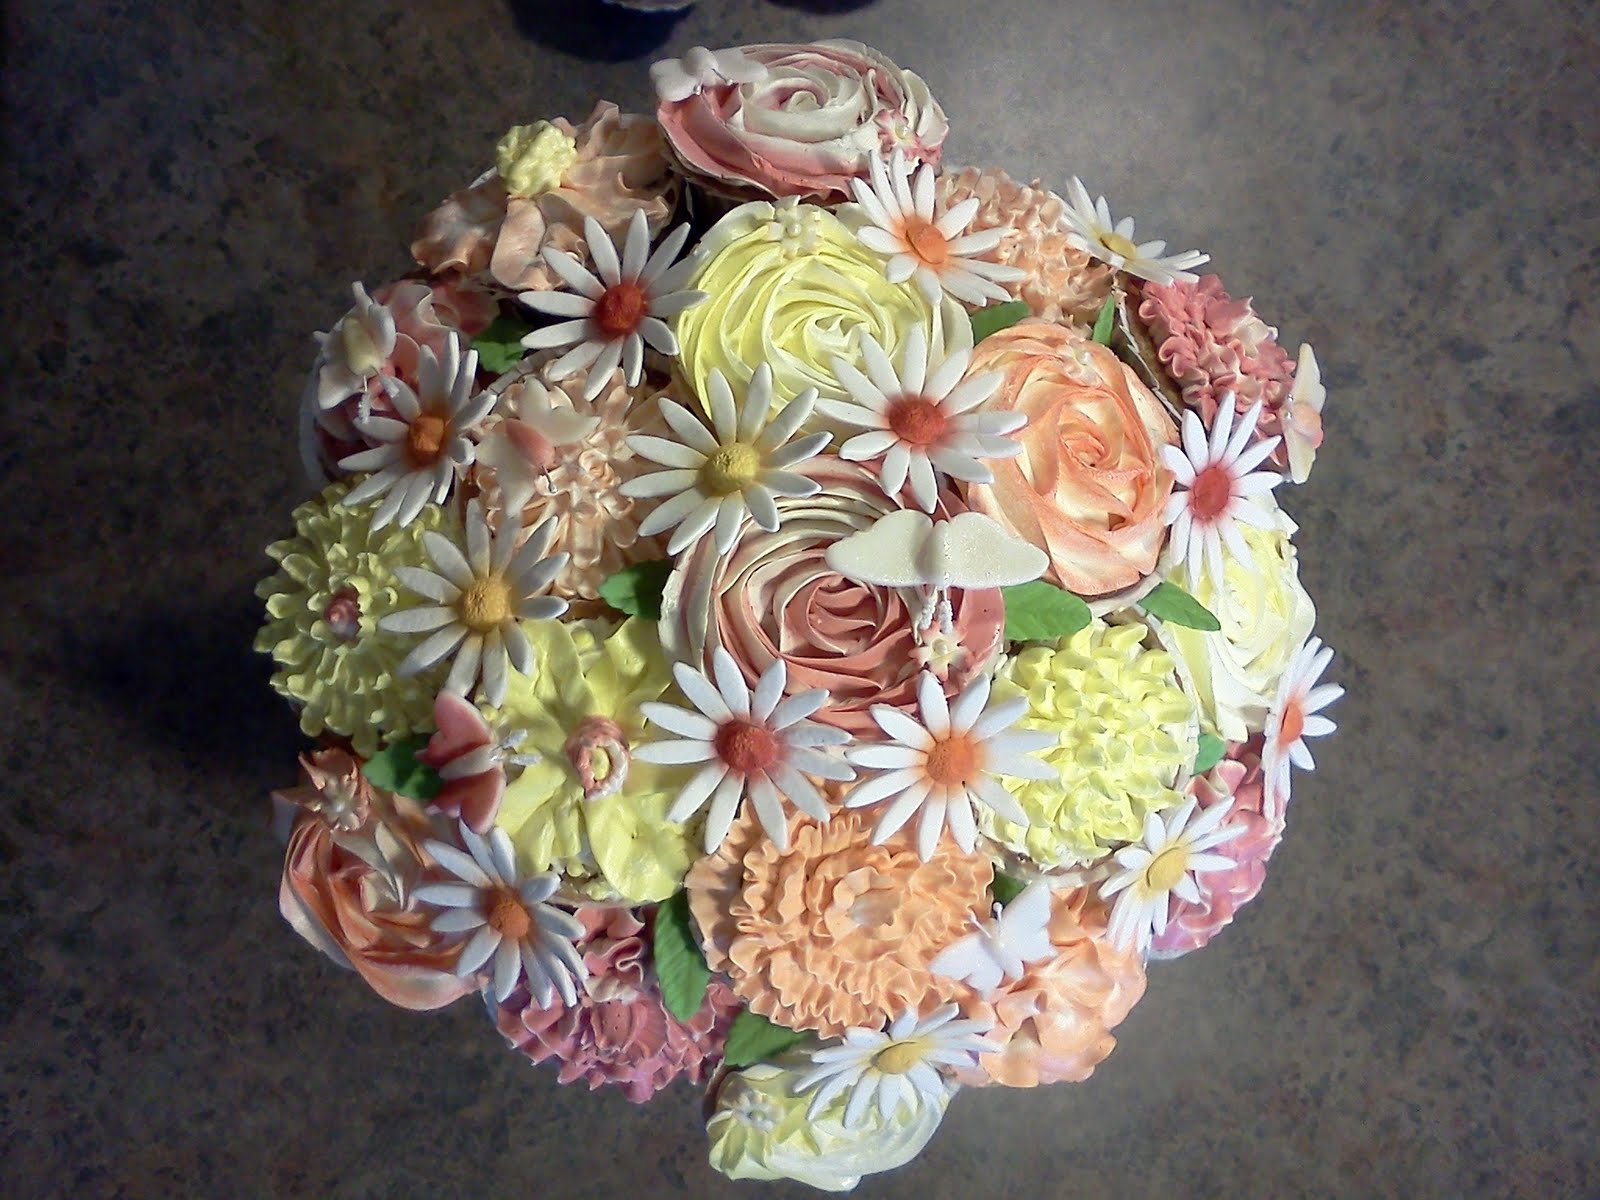 Colorful cupcake flower bouquet delivery image wedding and flowers awesome cupcake flower bouquet delivery pictures wedding and izmirmasajfo